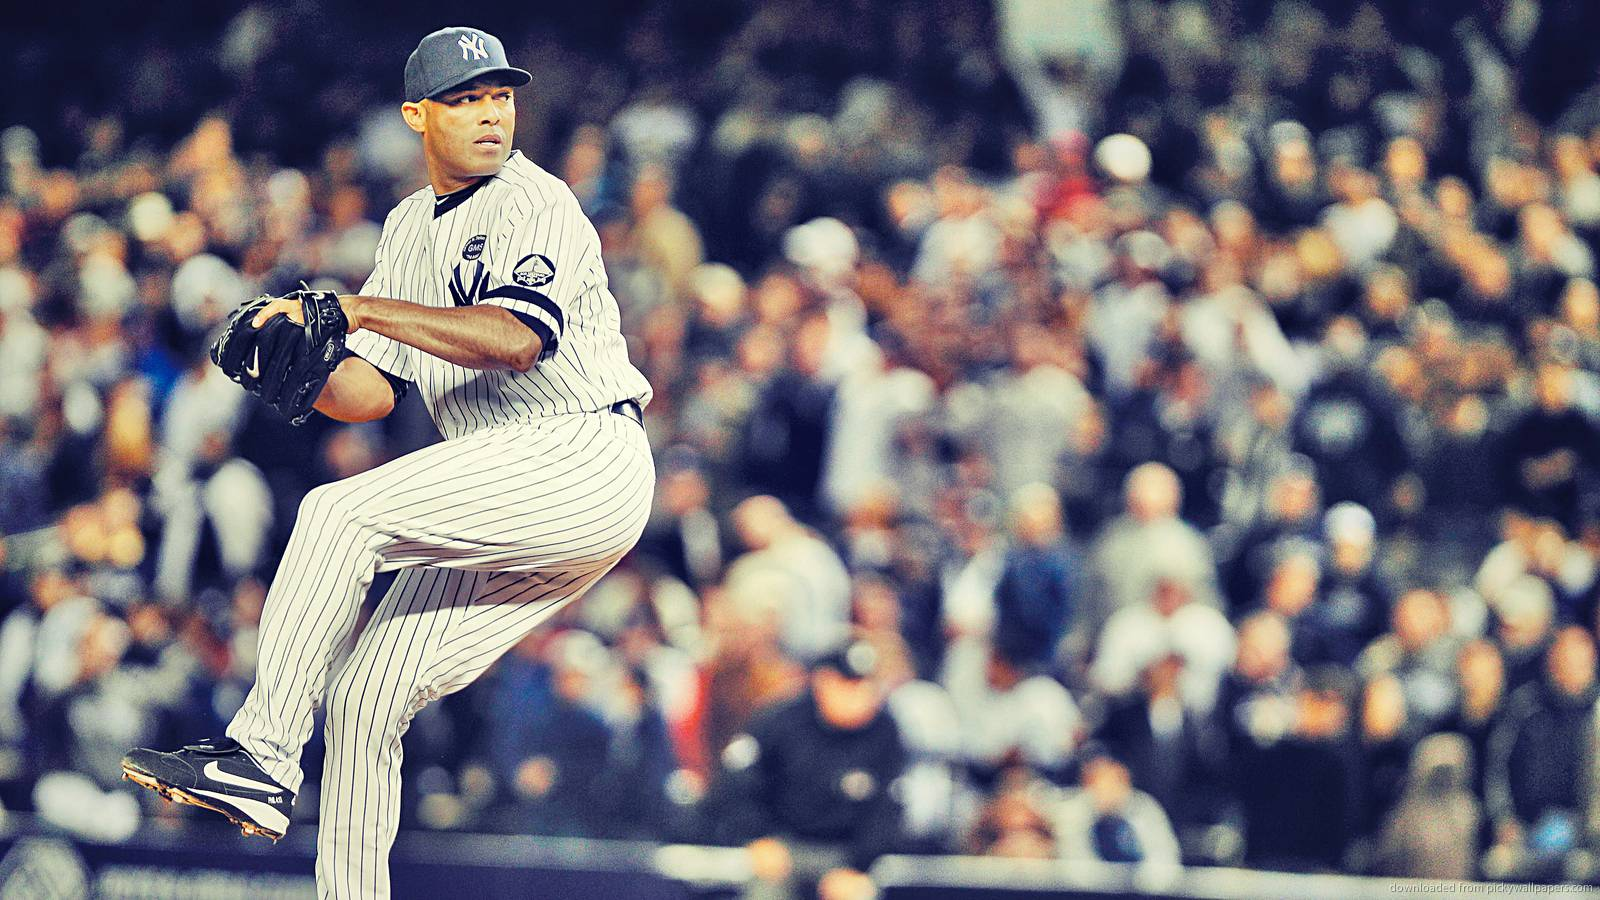 Gallery For > Mariano Rivera Wallpaper